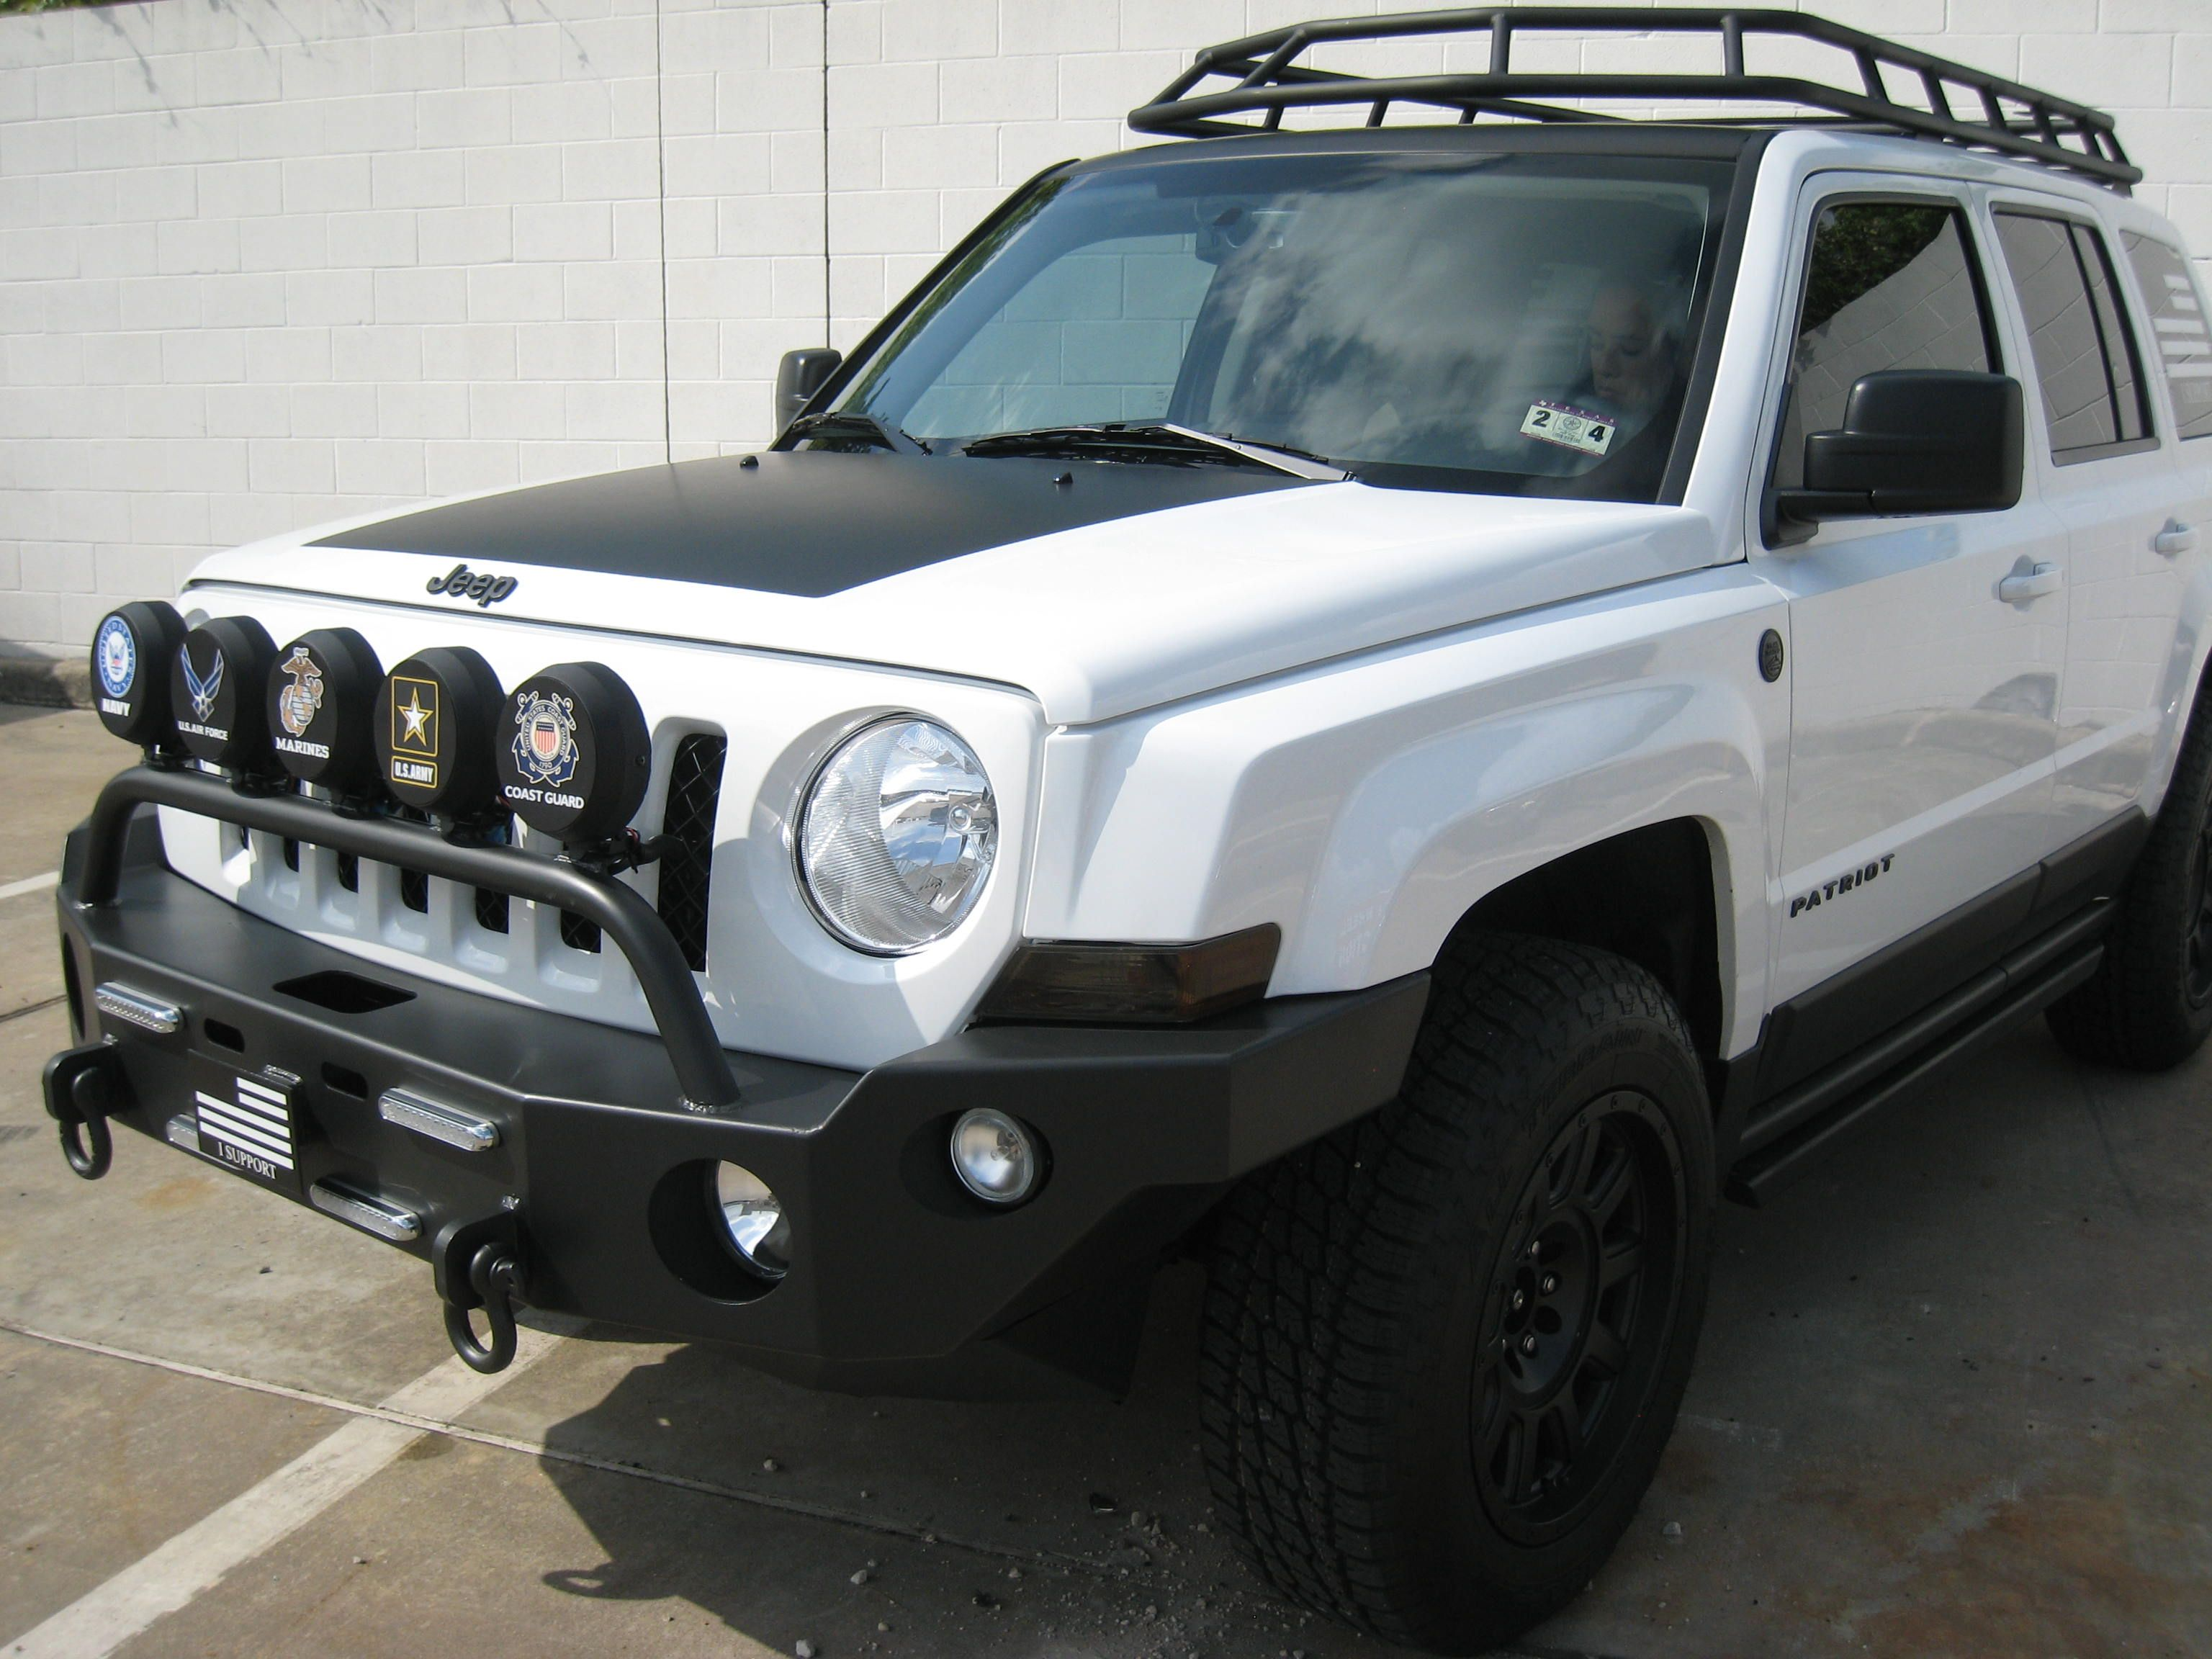 wincher jeep patriot lifted jeep patriots pinterest. Black Bedroom Furniture Sets. Home Design Ideas